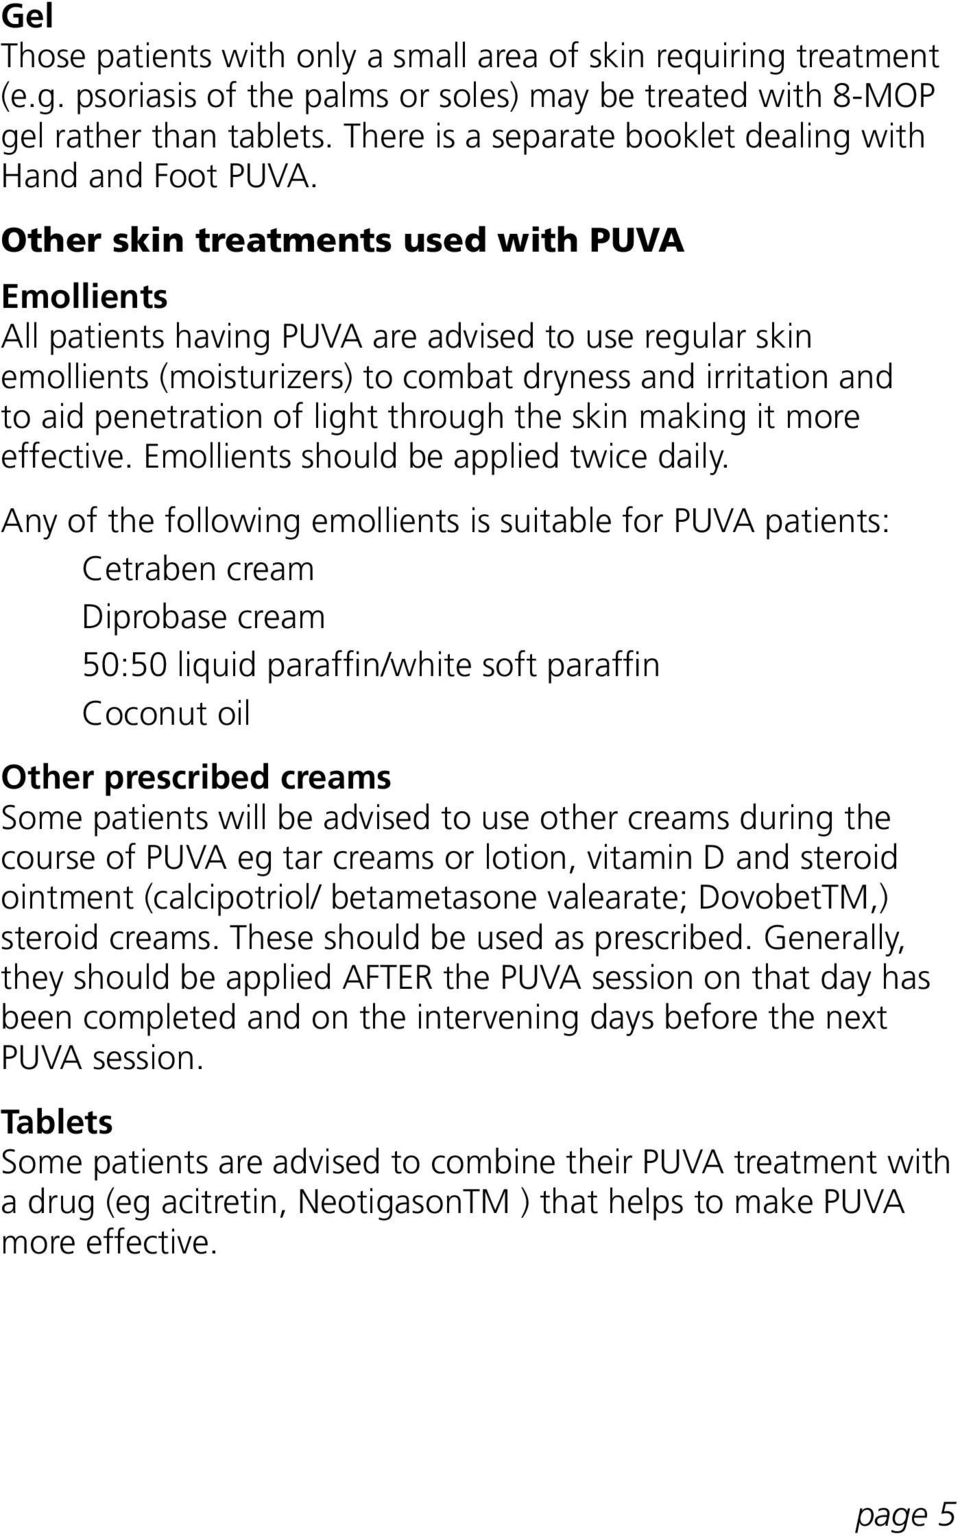 Other skin treatments used with PUVA Emollients All patients having PUVA are advised to use regular skin emollients (moisturizers) to combat dryness and irritation and to aid penetration of light